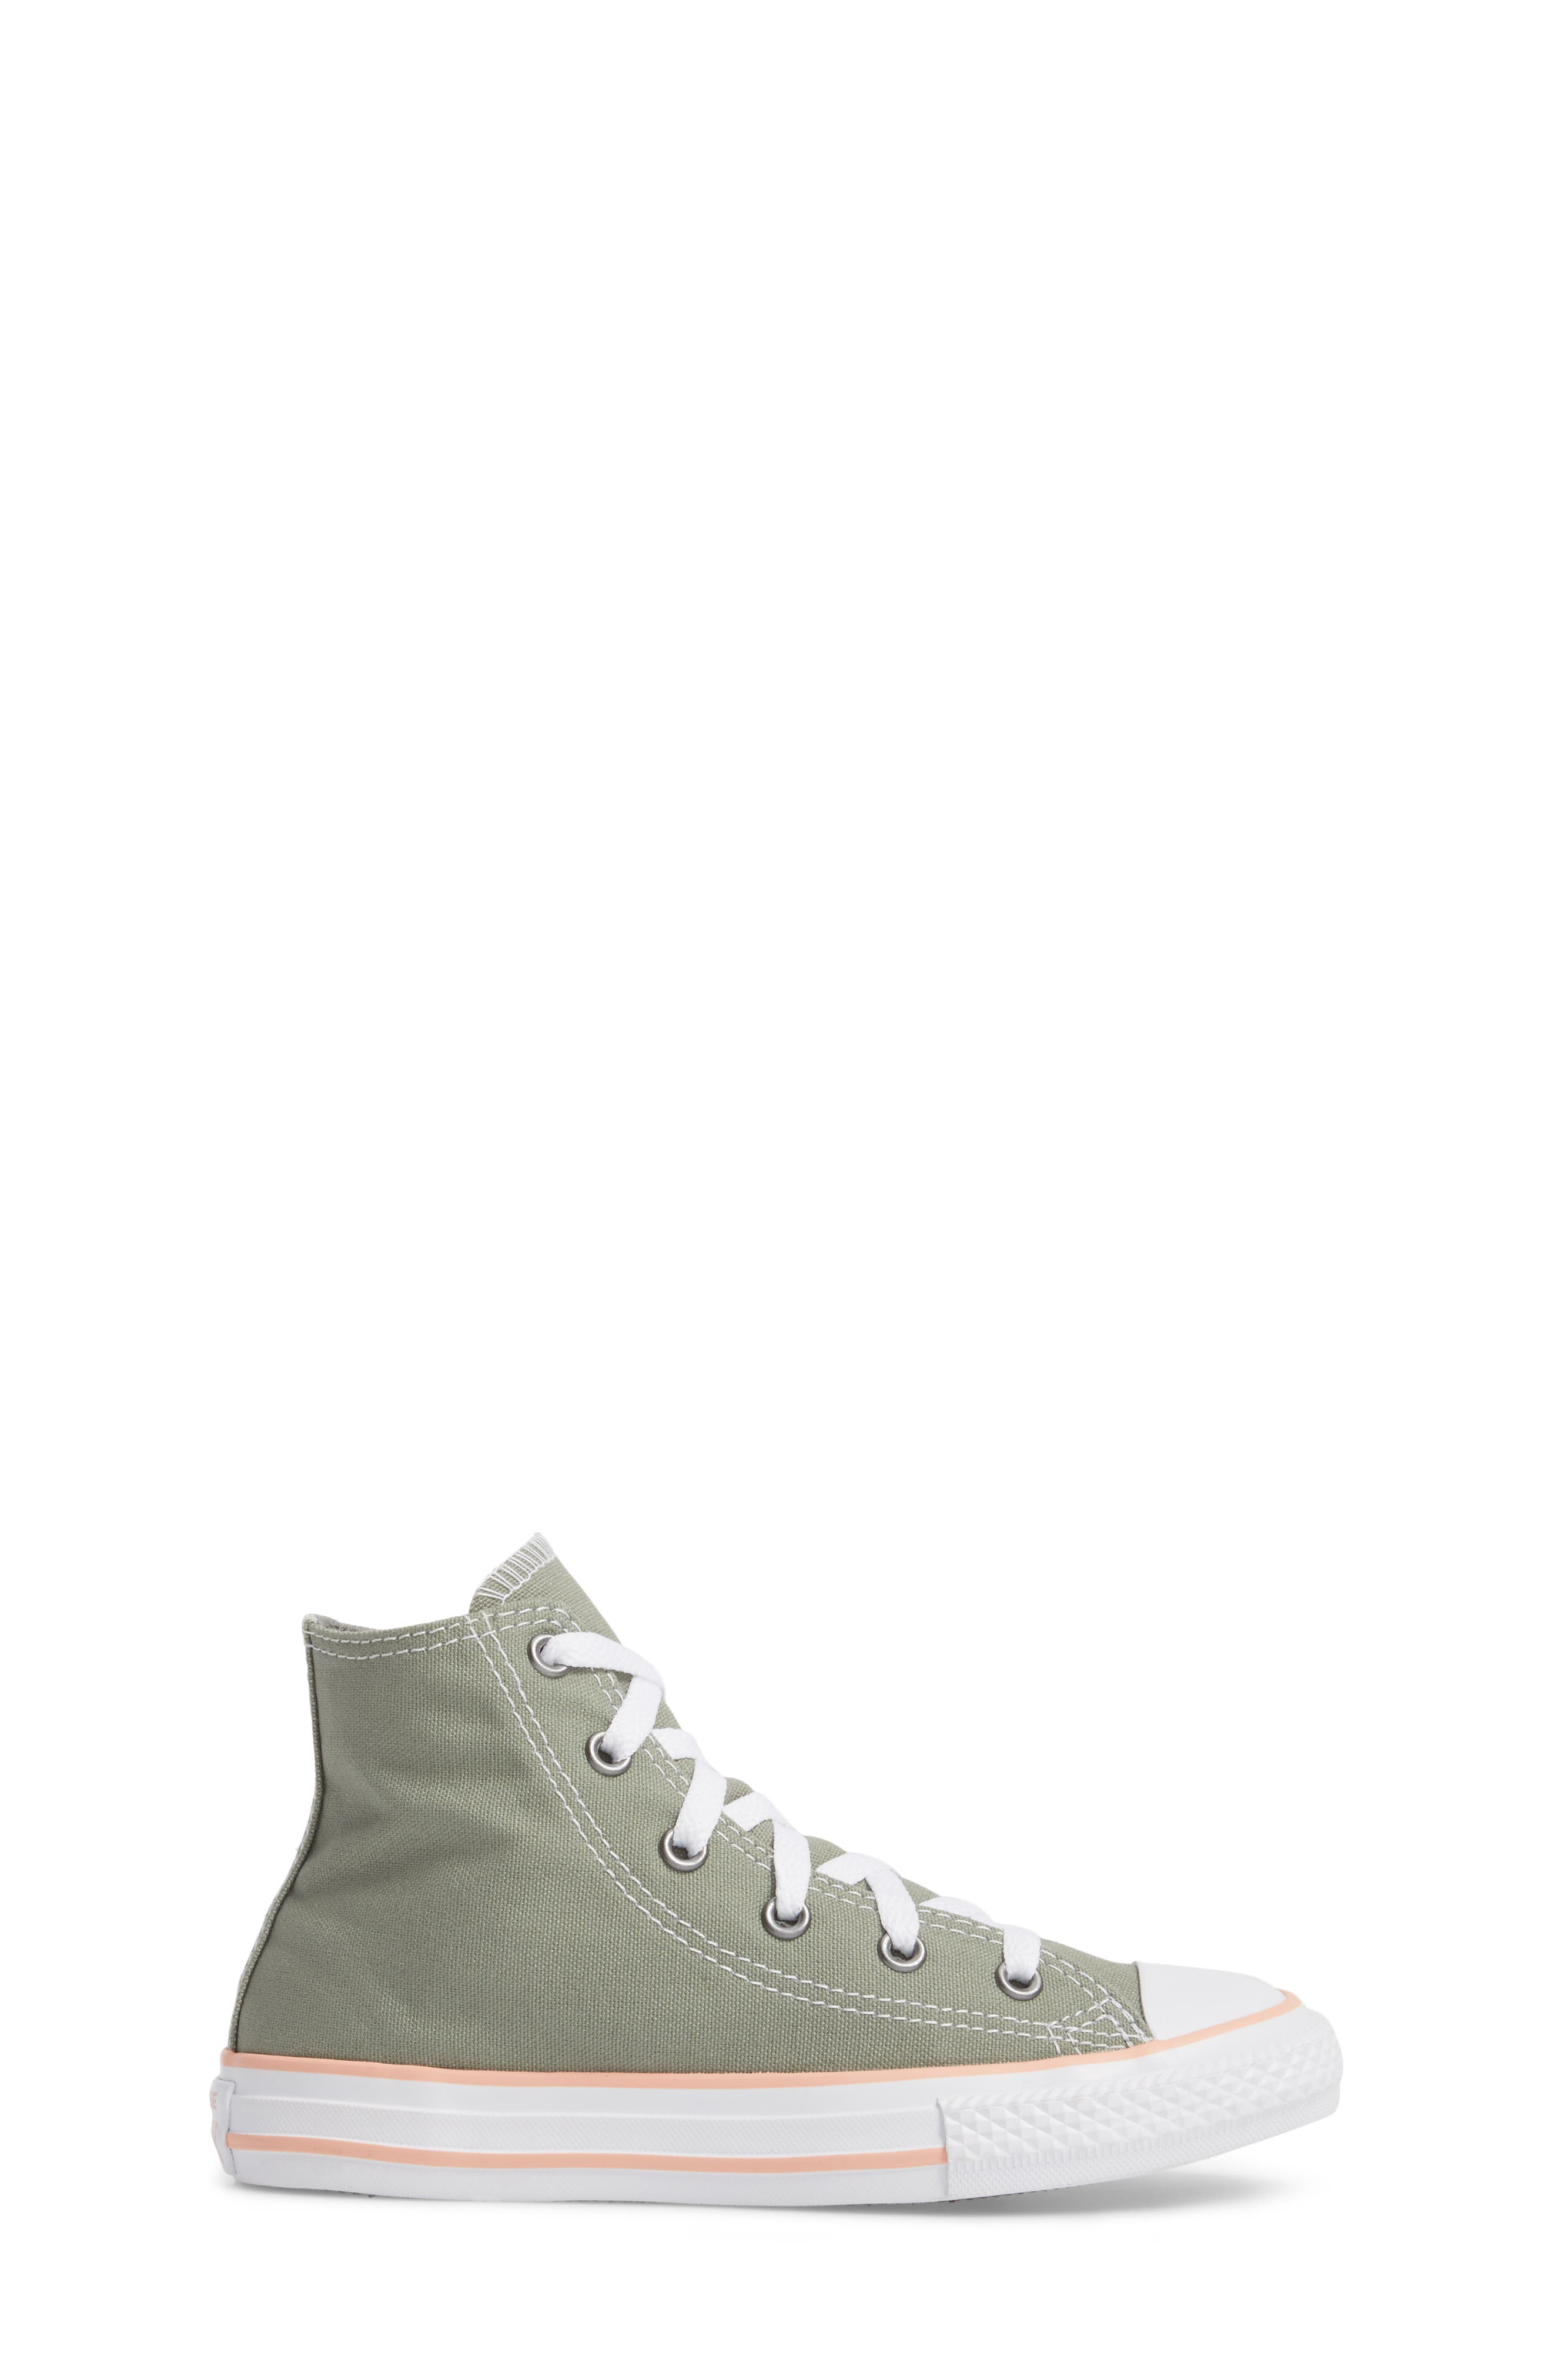 Chuck Taylor<sup>®</sup> All Star<sup>®</sup> High Top Sneaker,                             Alternate thumbnail 7, color,